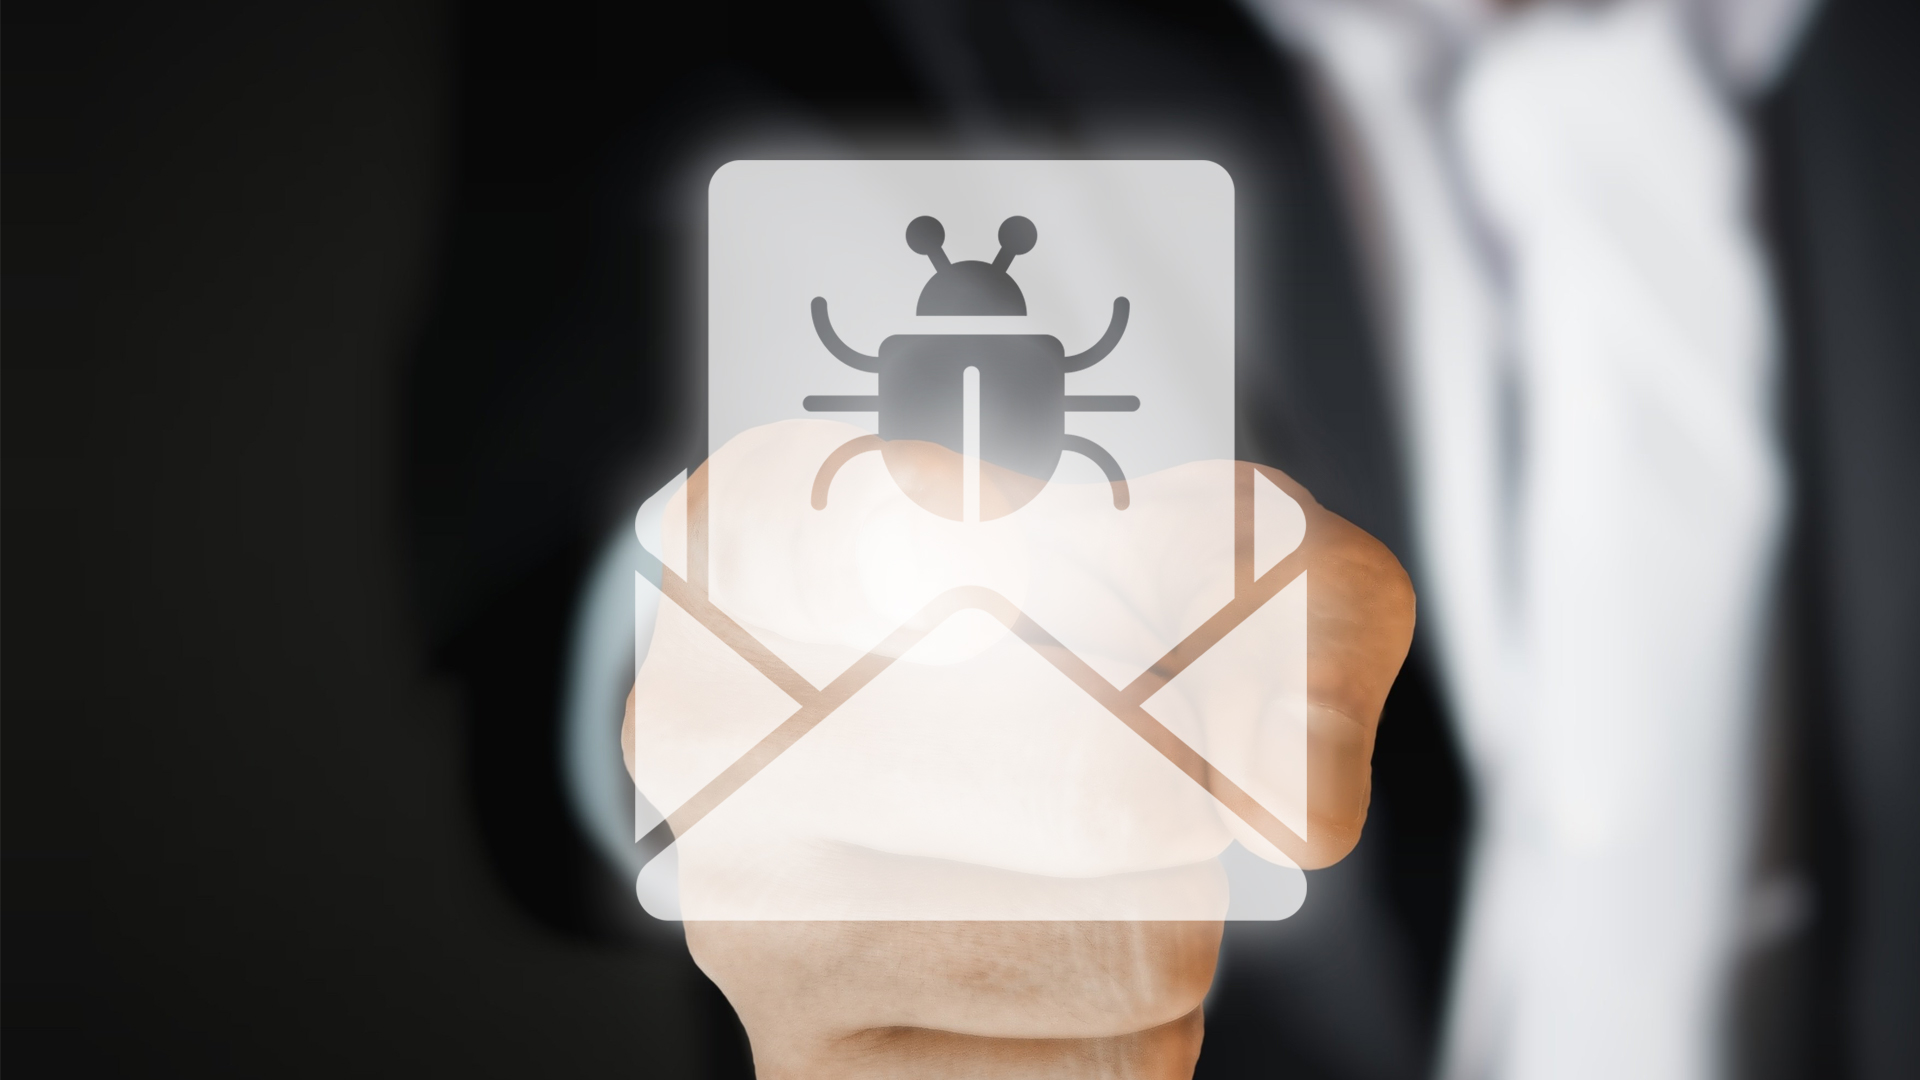 Malicious Email Appearing to Come from the SBA: A COVID-19 Case Study